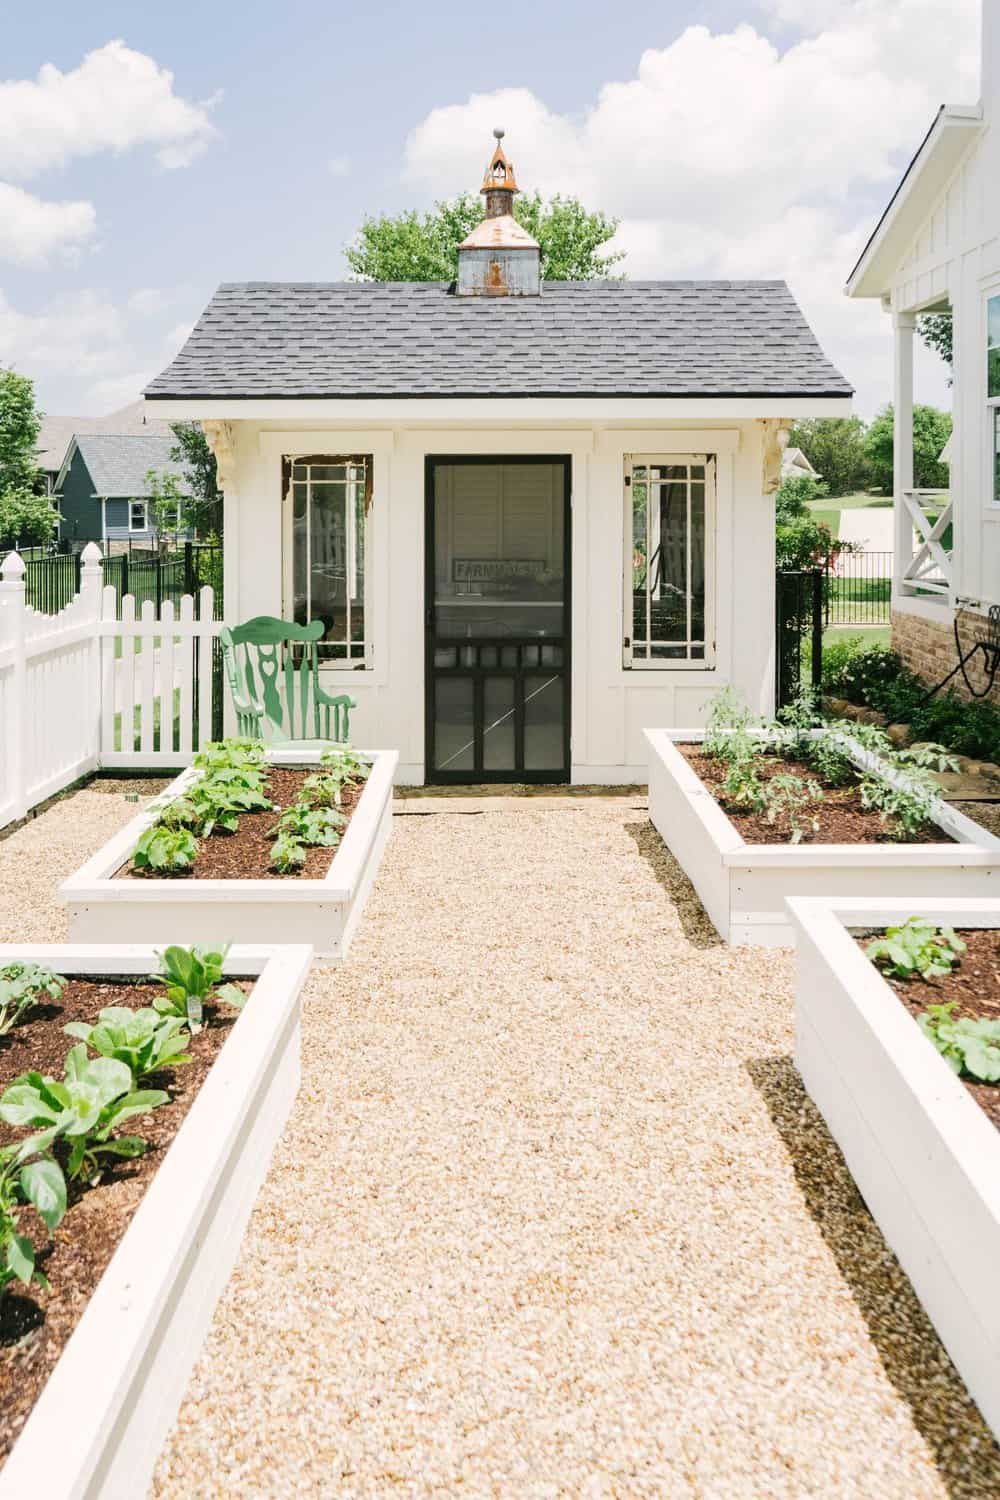 raised-garden-beds-with-a-potting-shed